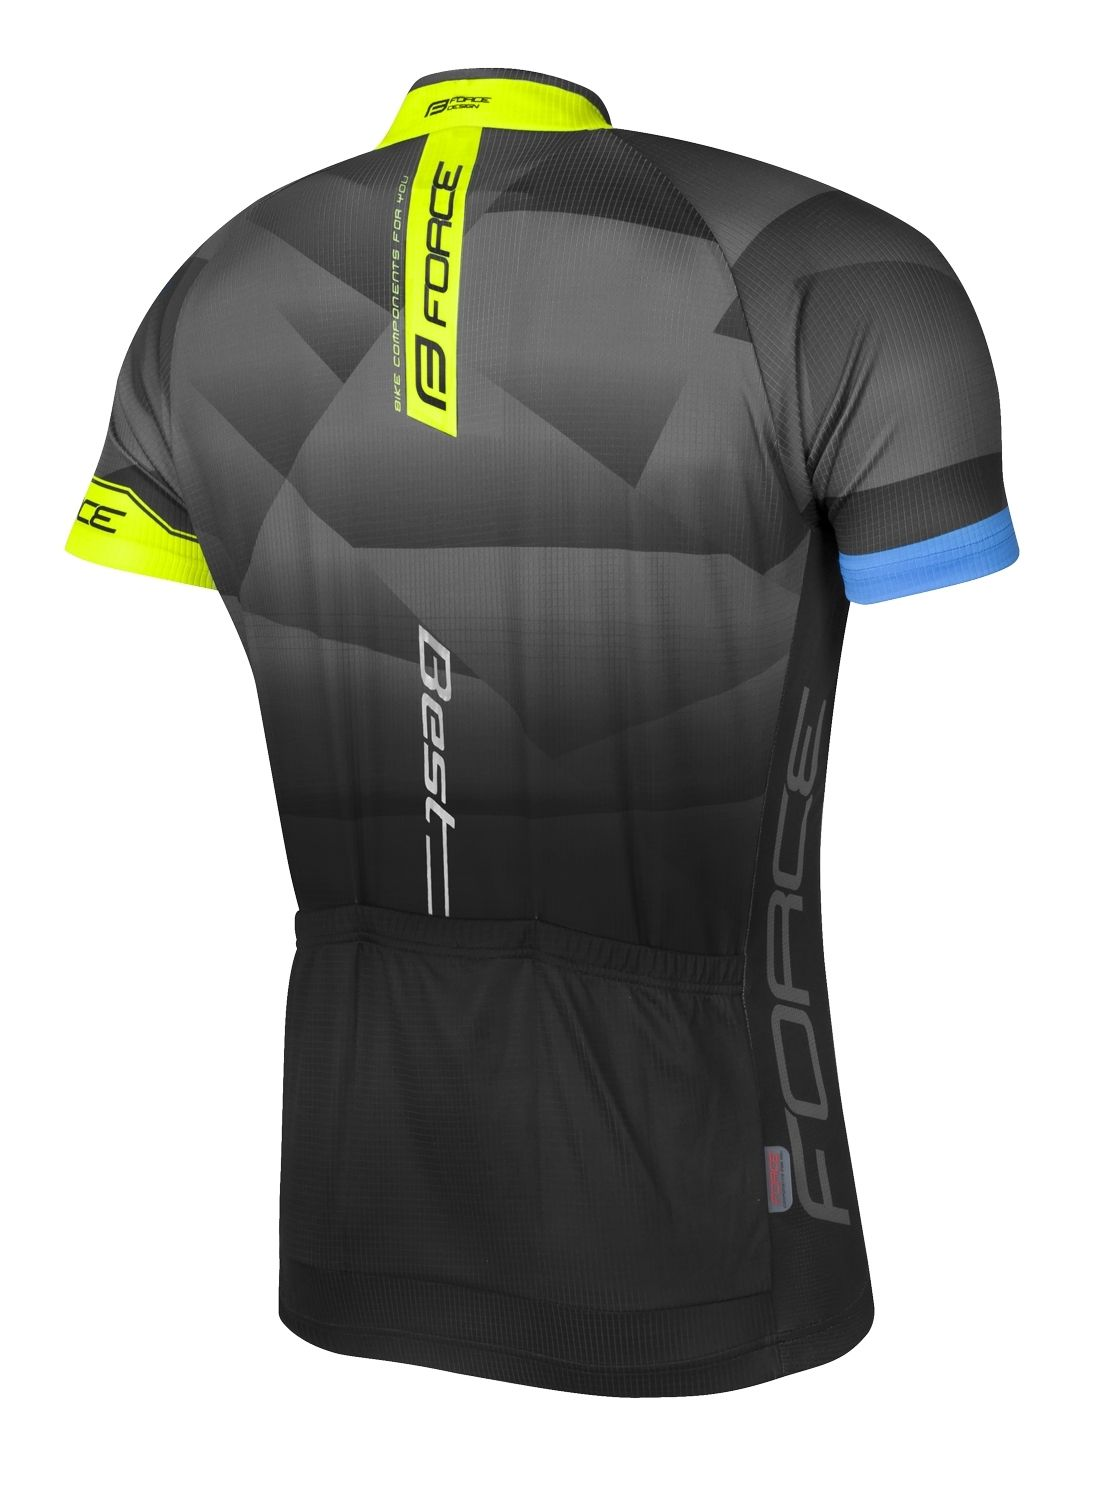 Force BEST short sleeve cycling jersey black fluo yellow (900128). Previous 82f60483e